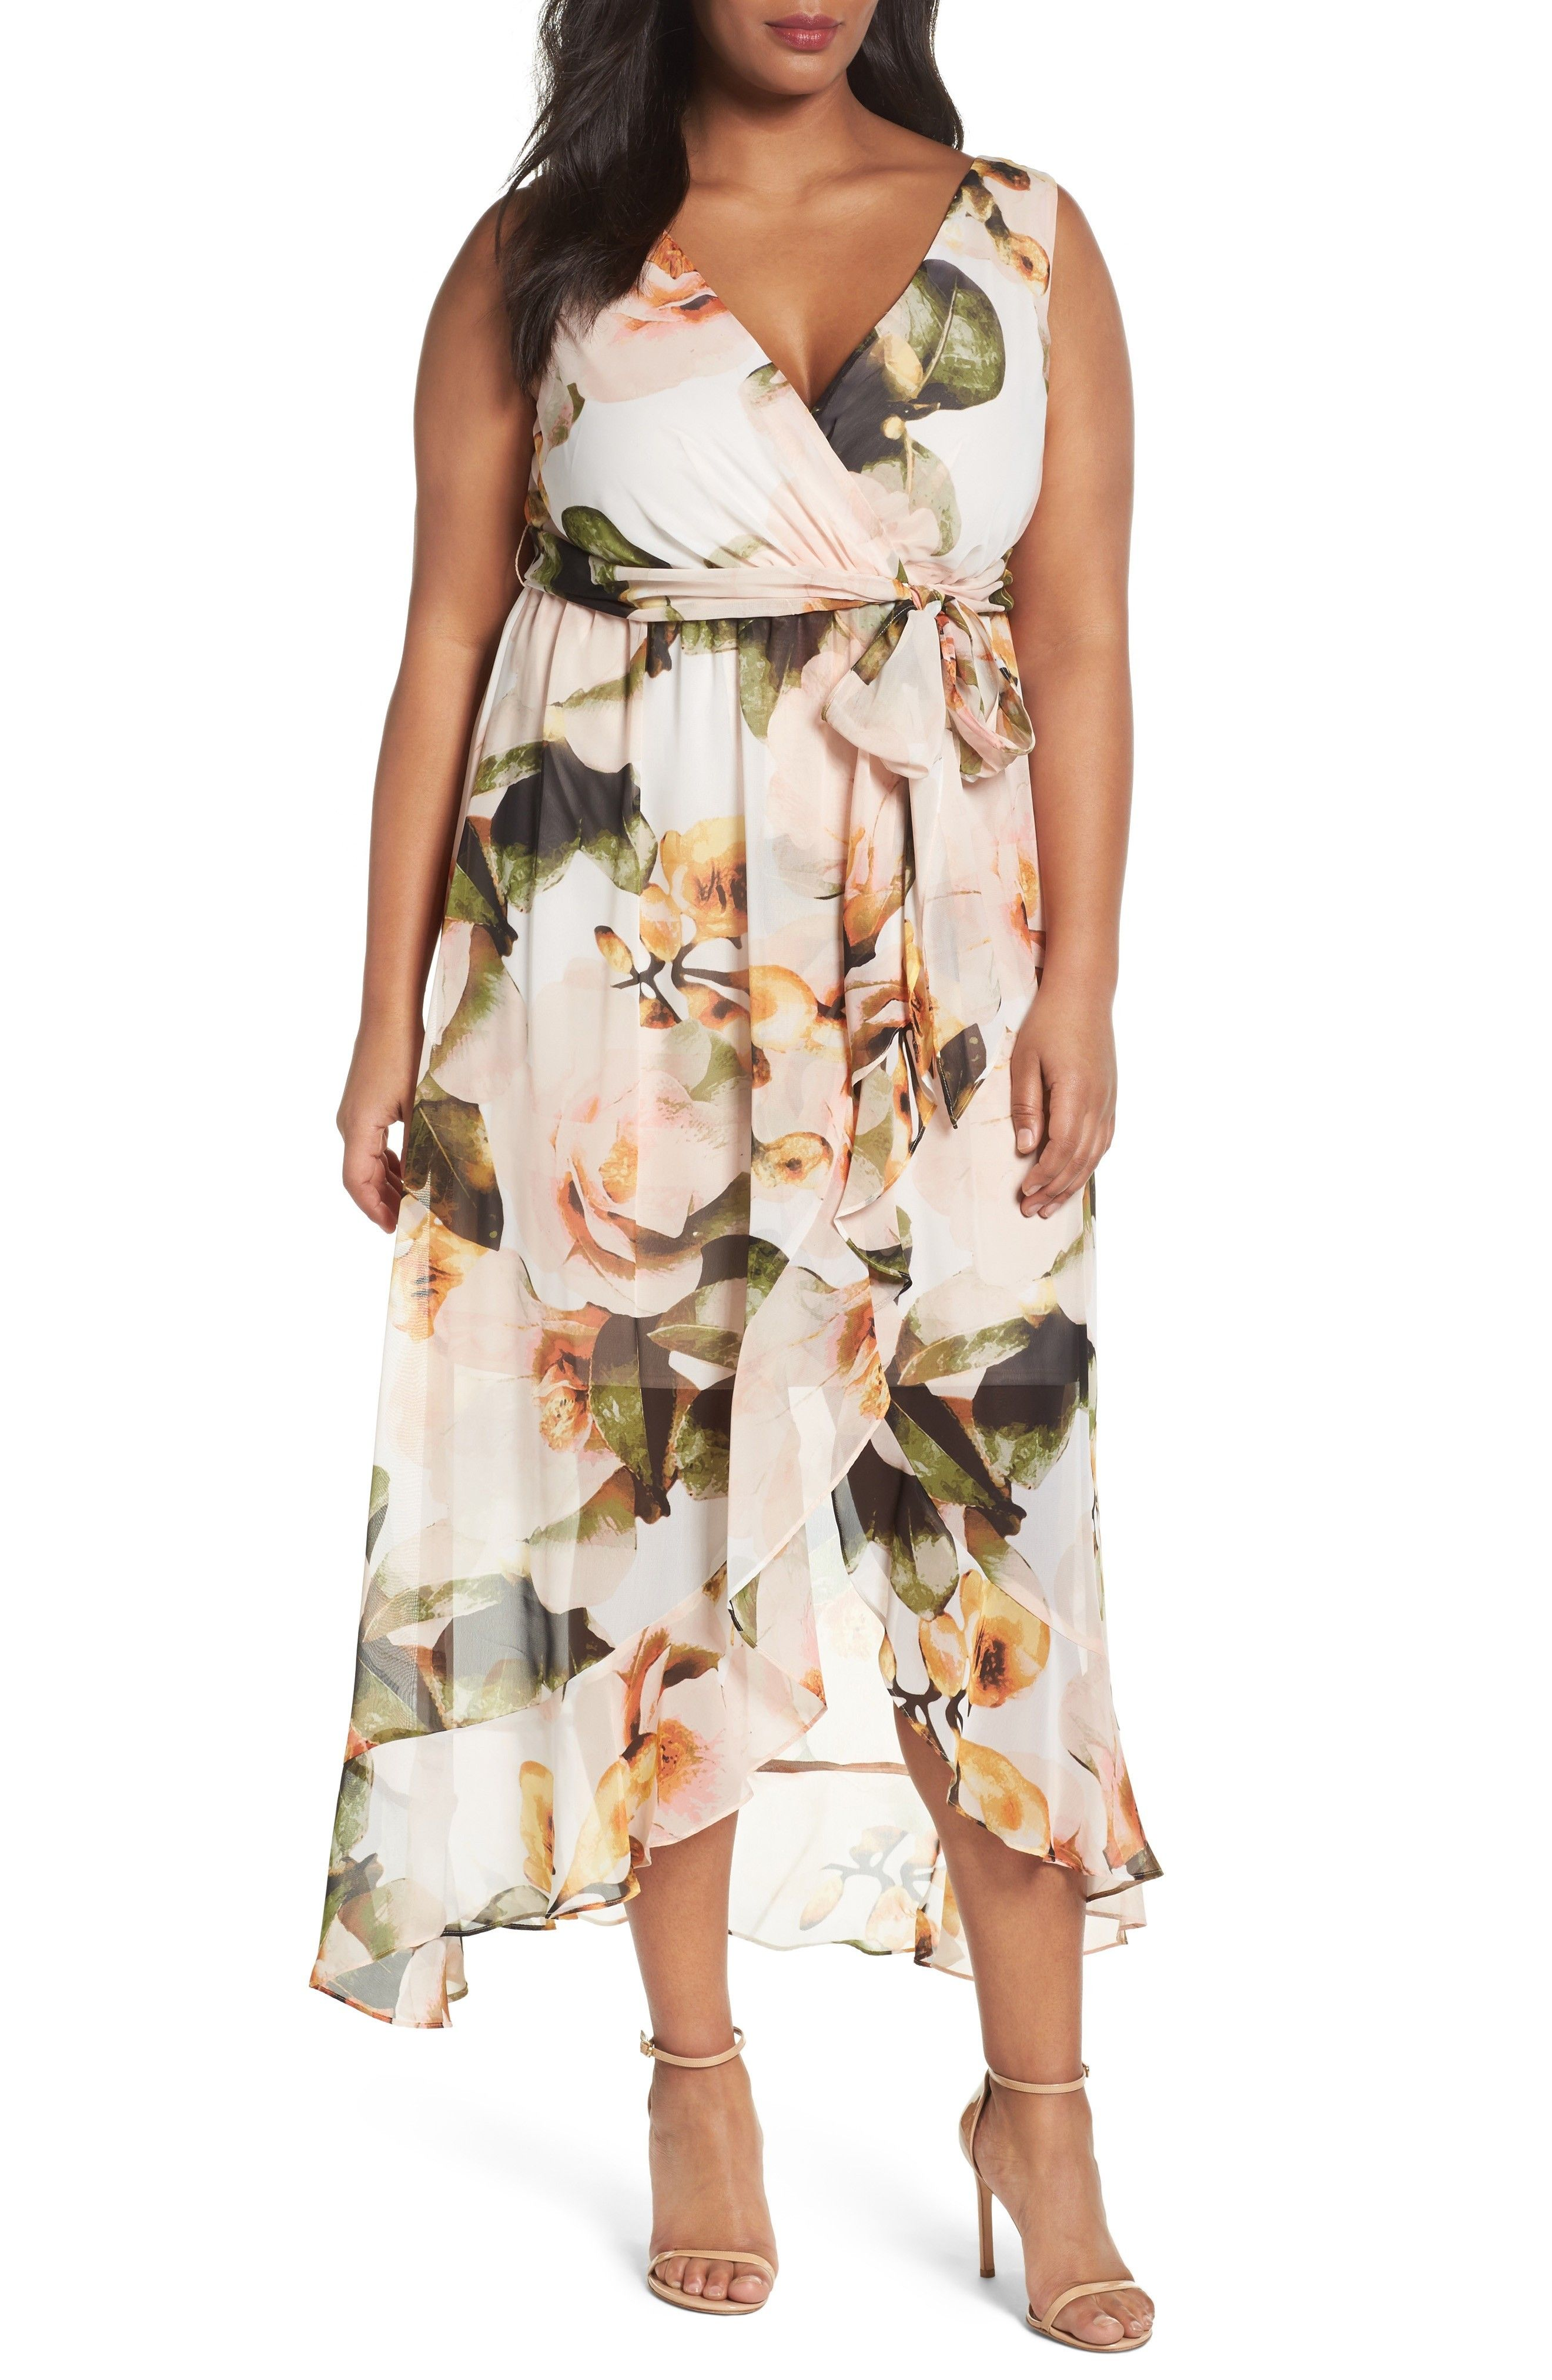 Floral Dresses For Weddings Dress For The Wedding Plus Size Spring Dresses Floral Maxi Dress Wedding Attire Guest [ 4048 x 2640 Pixel ]